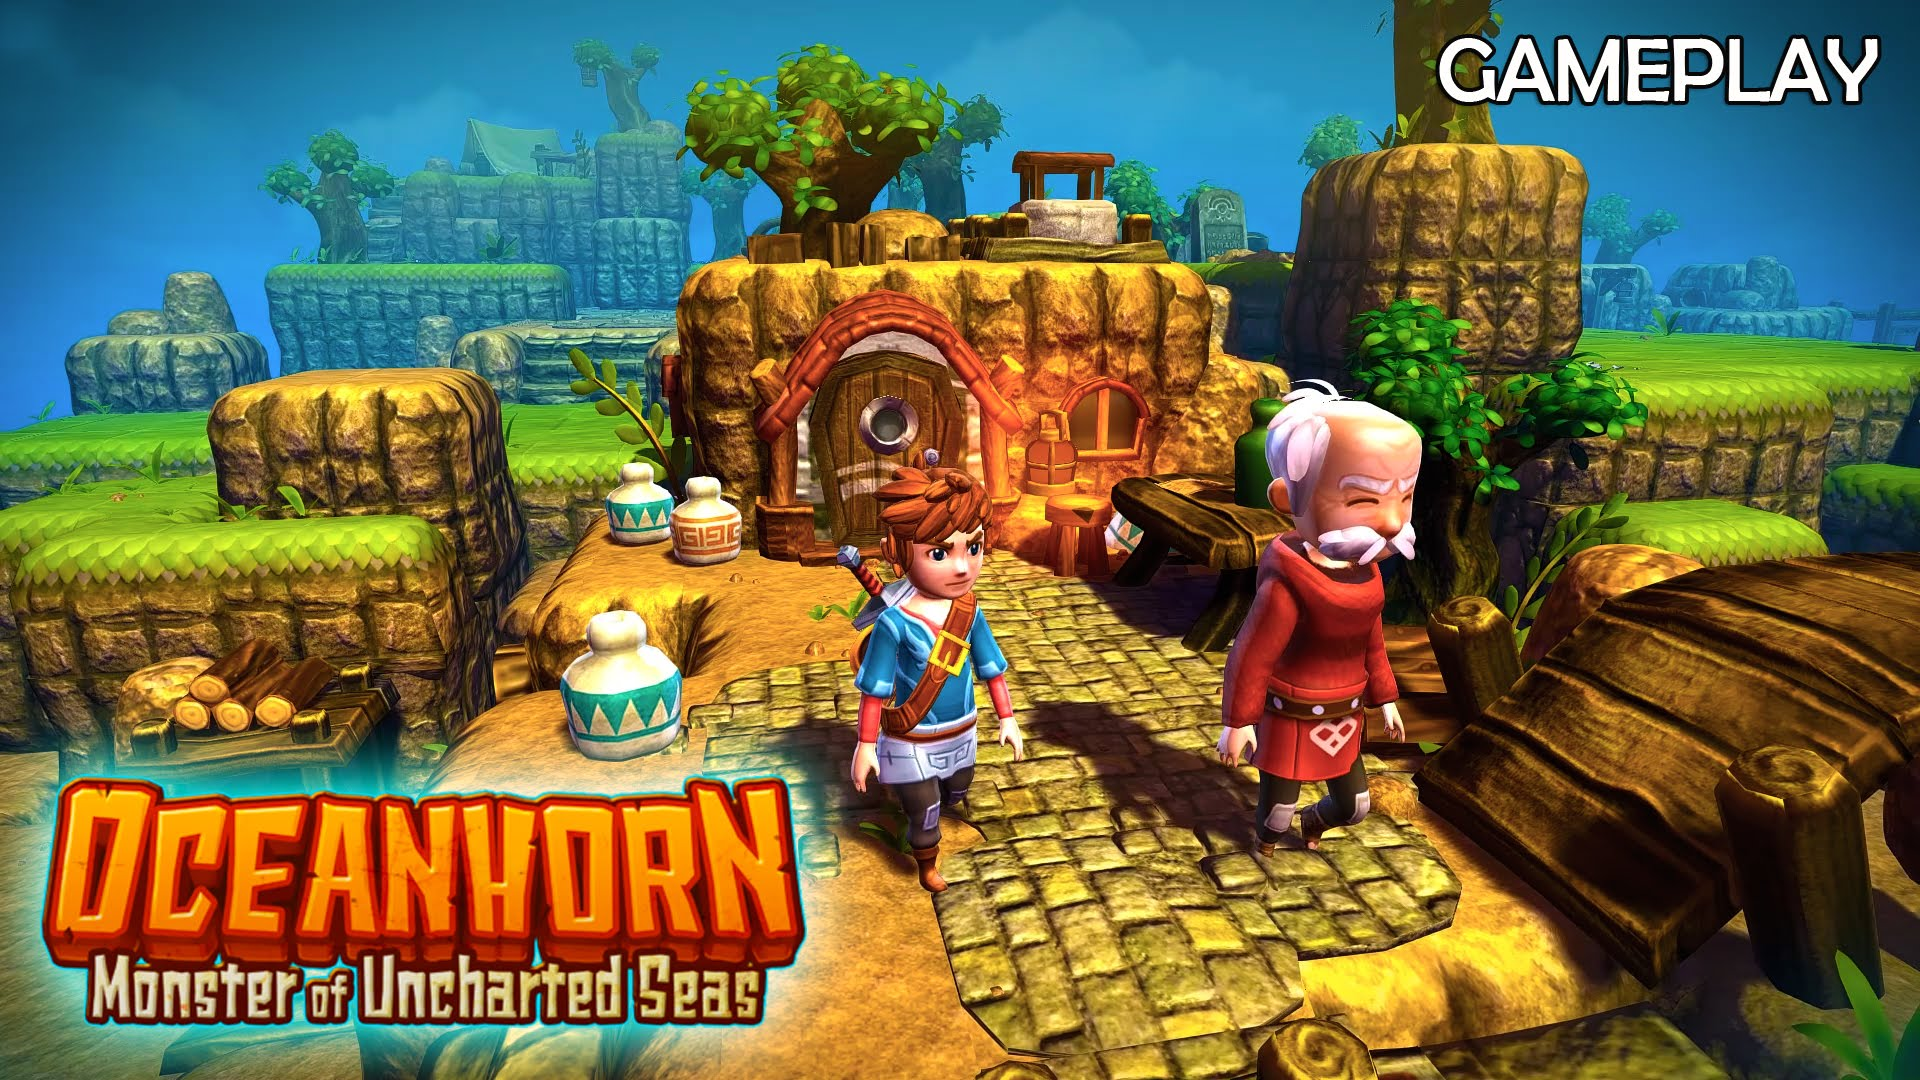 Oceanhorn Monster of the Uncharted Seas